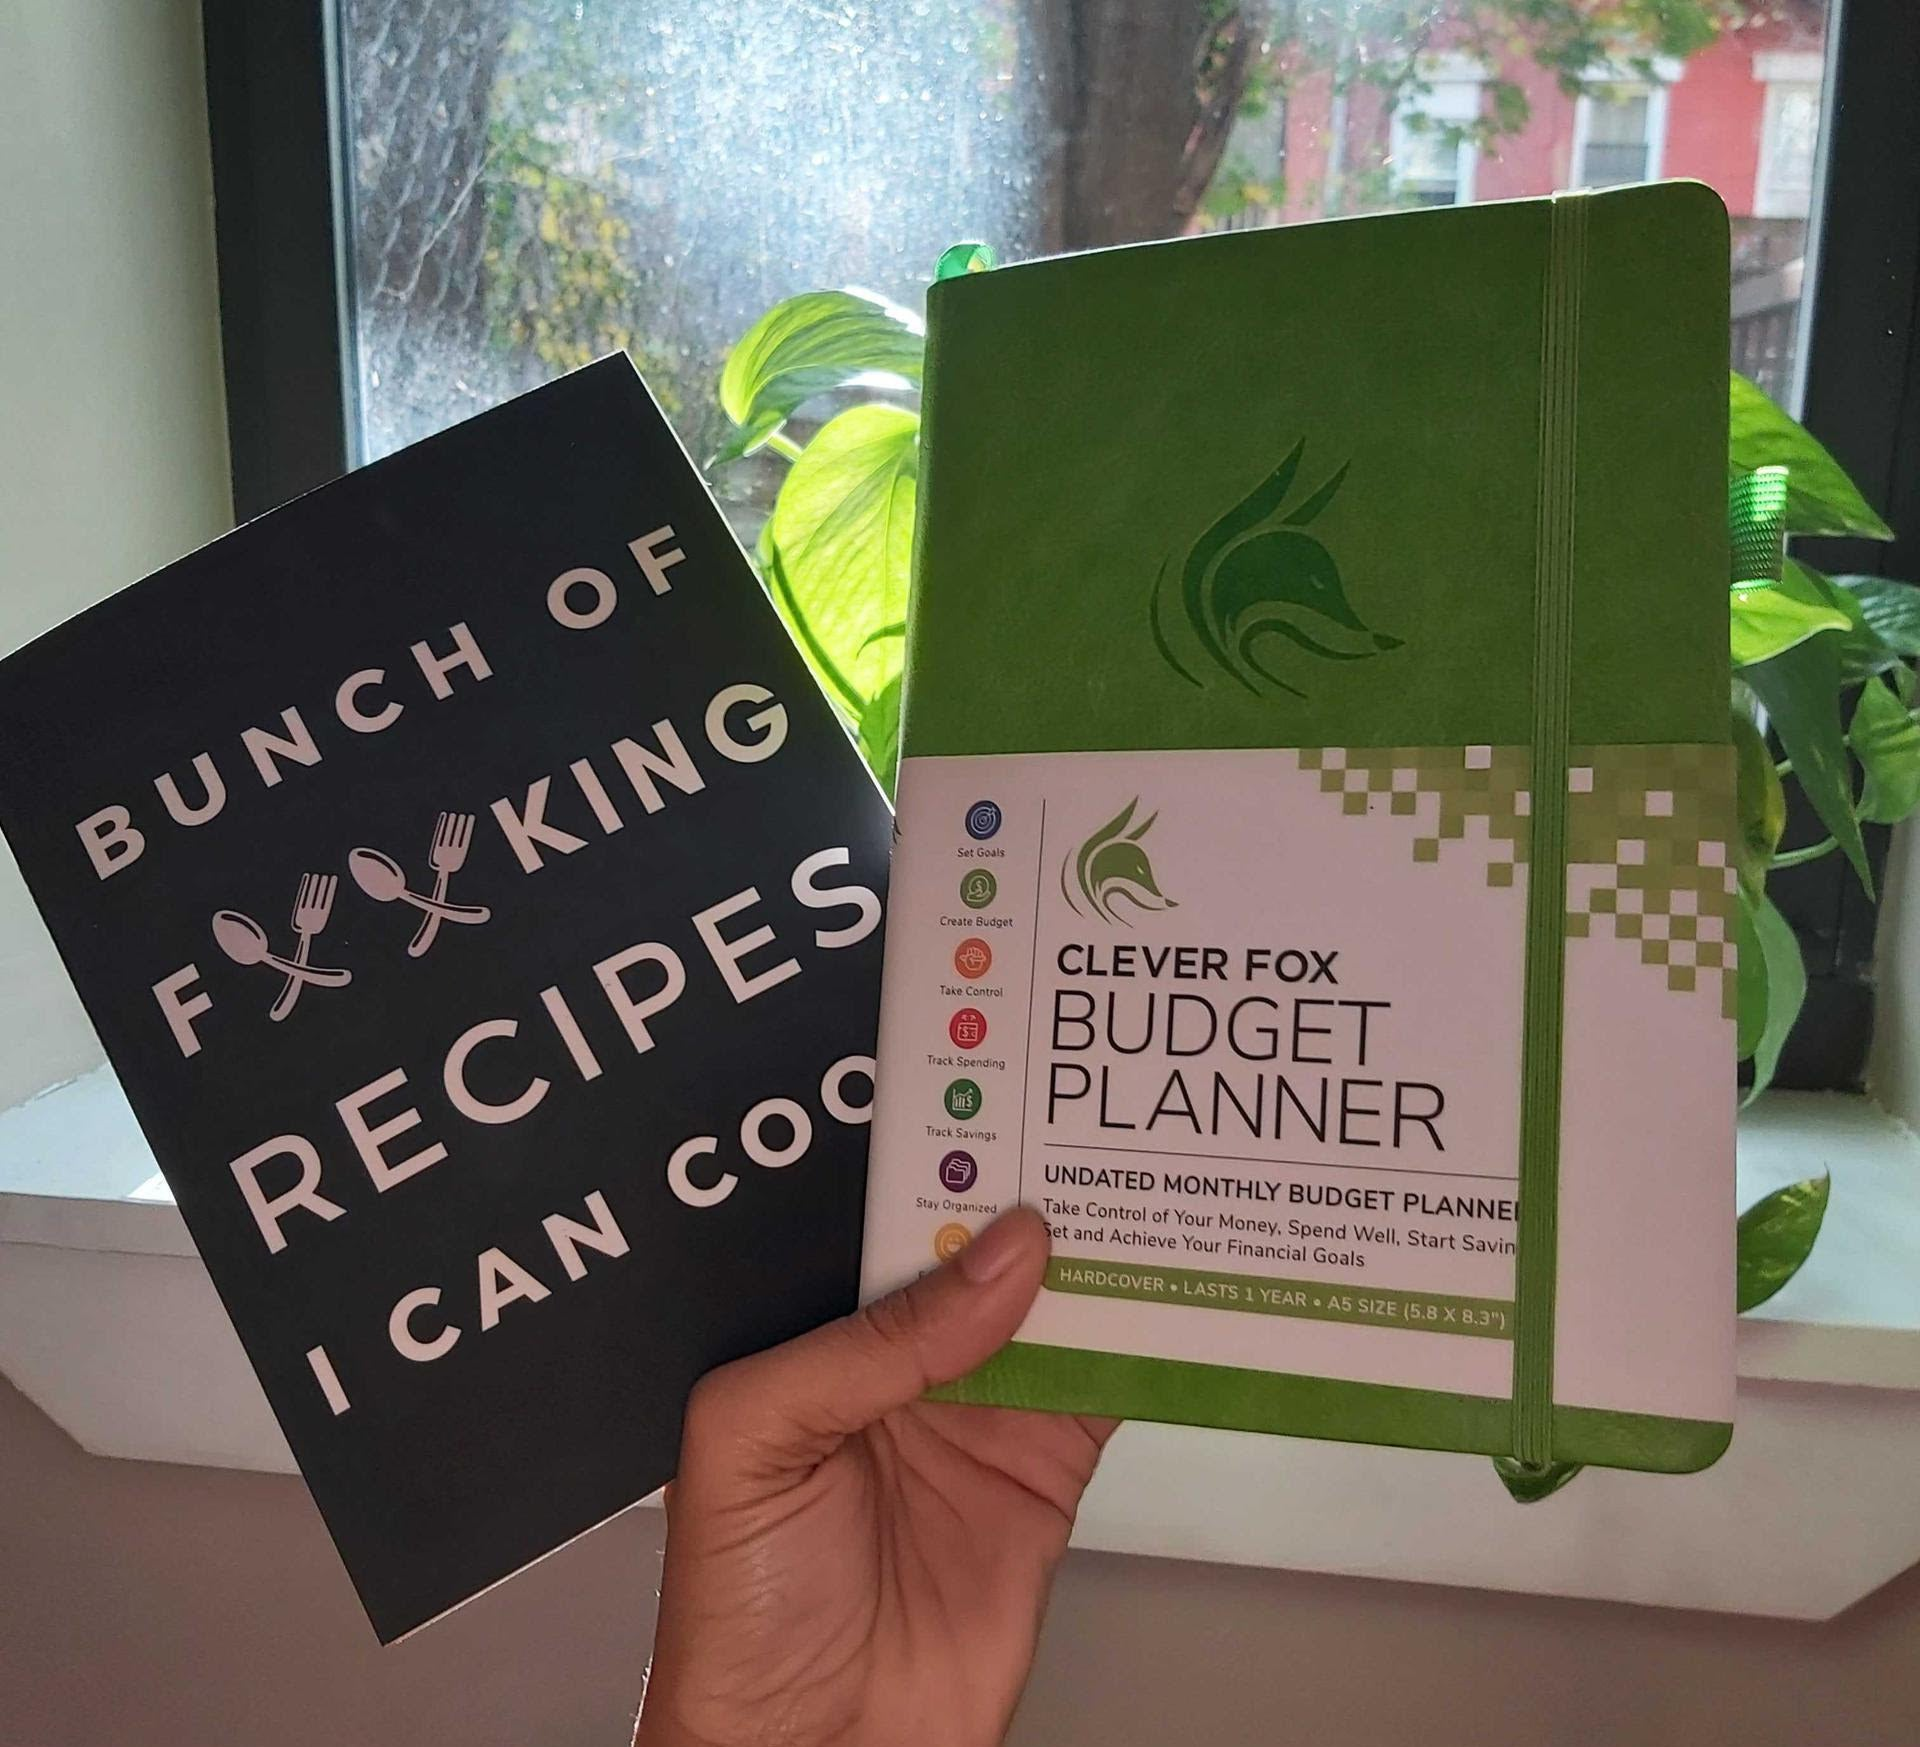 """buzzfeeder holding the budget planner and a recipe book that reads """"bunch of forking recipes I can cook"""" with forks in the middle of the word """"forking"""""""